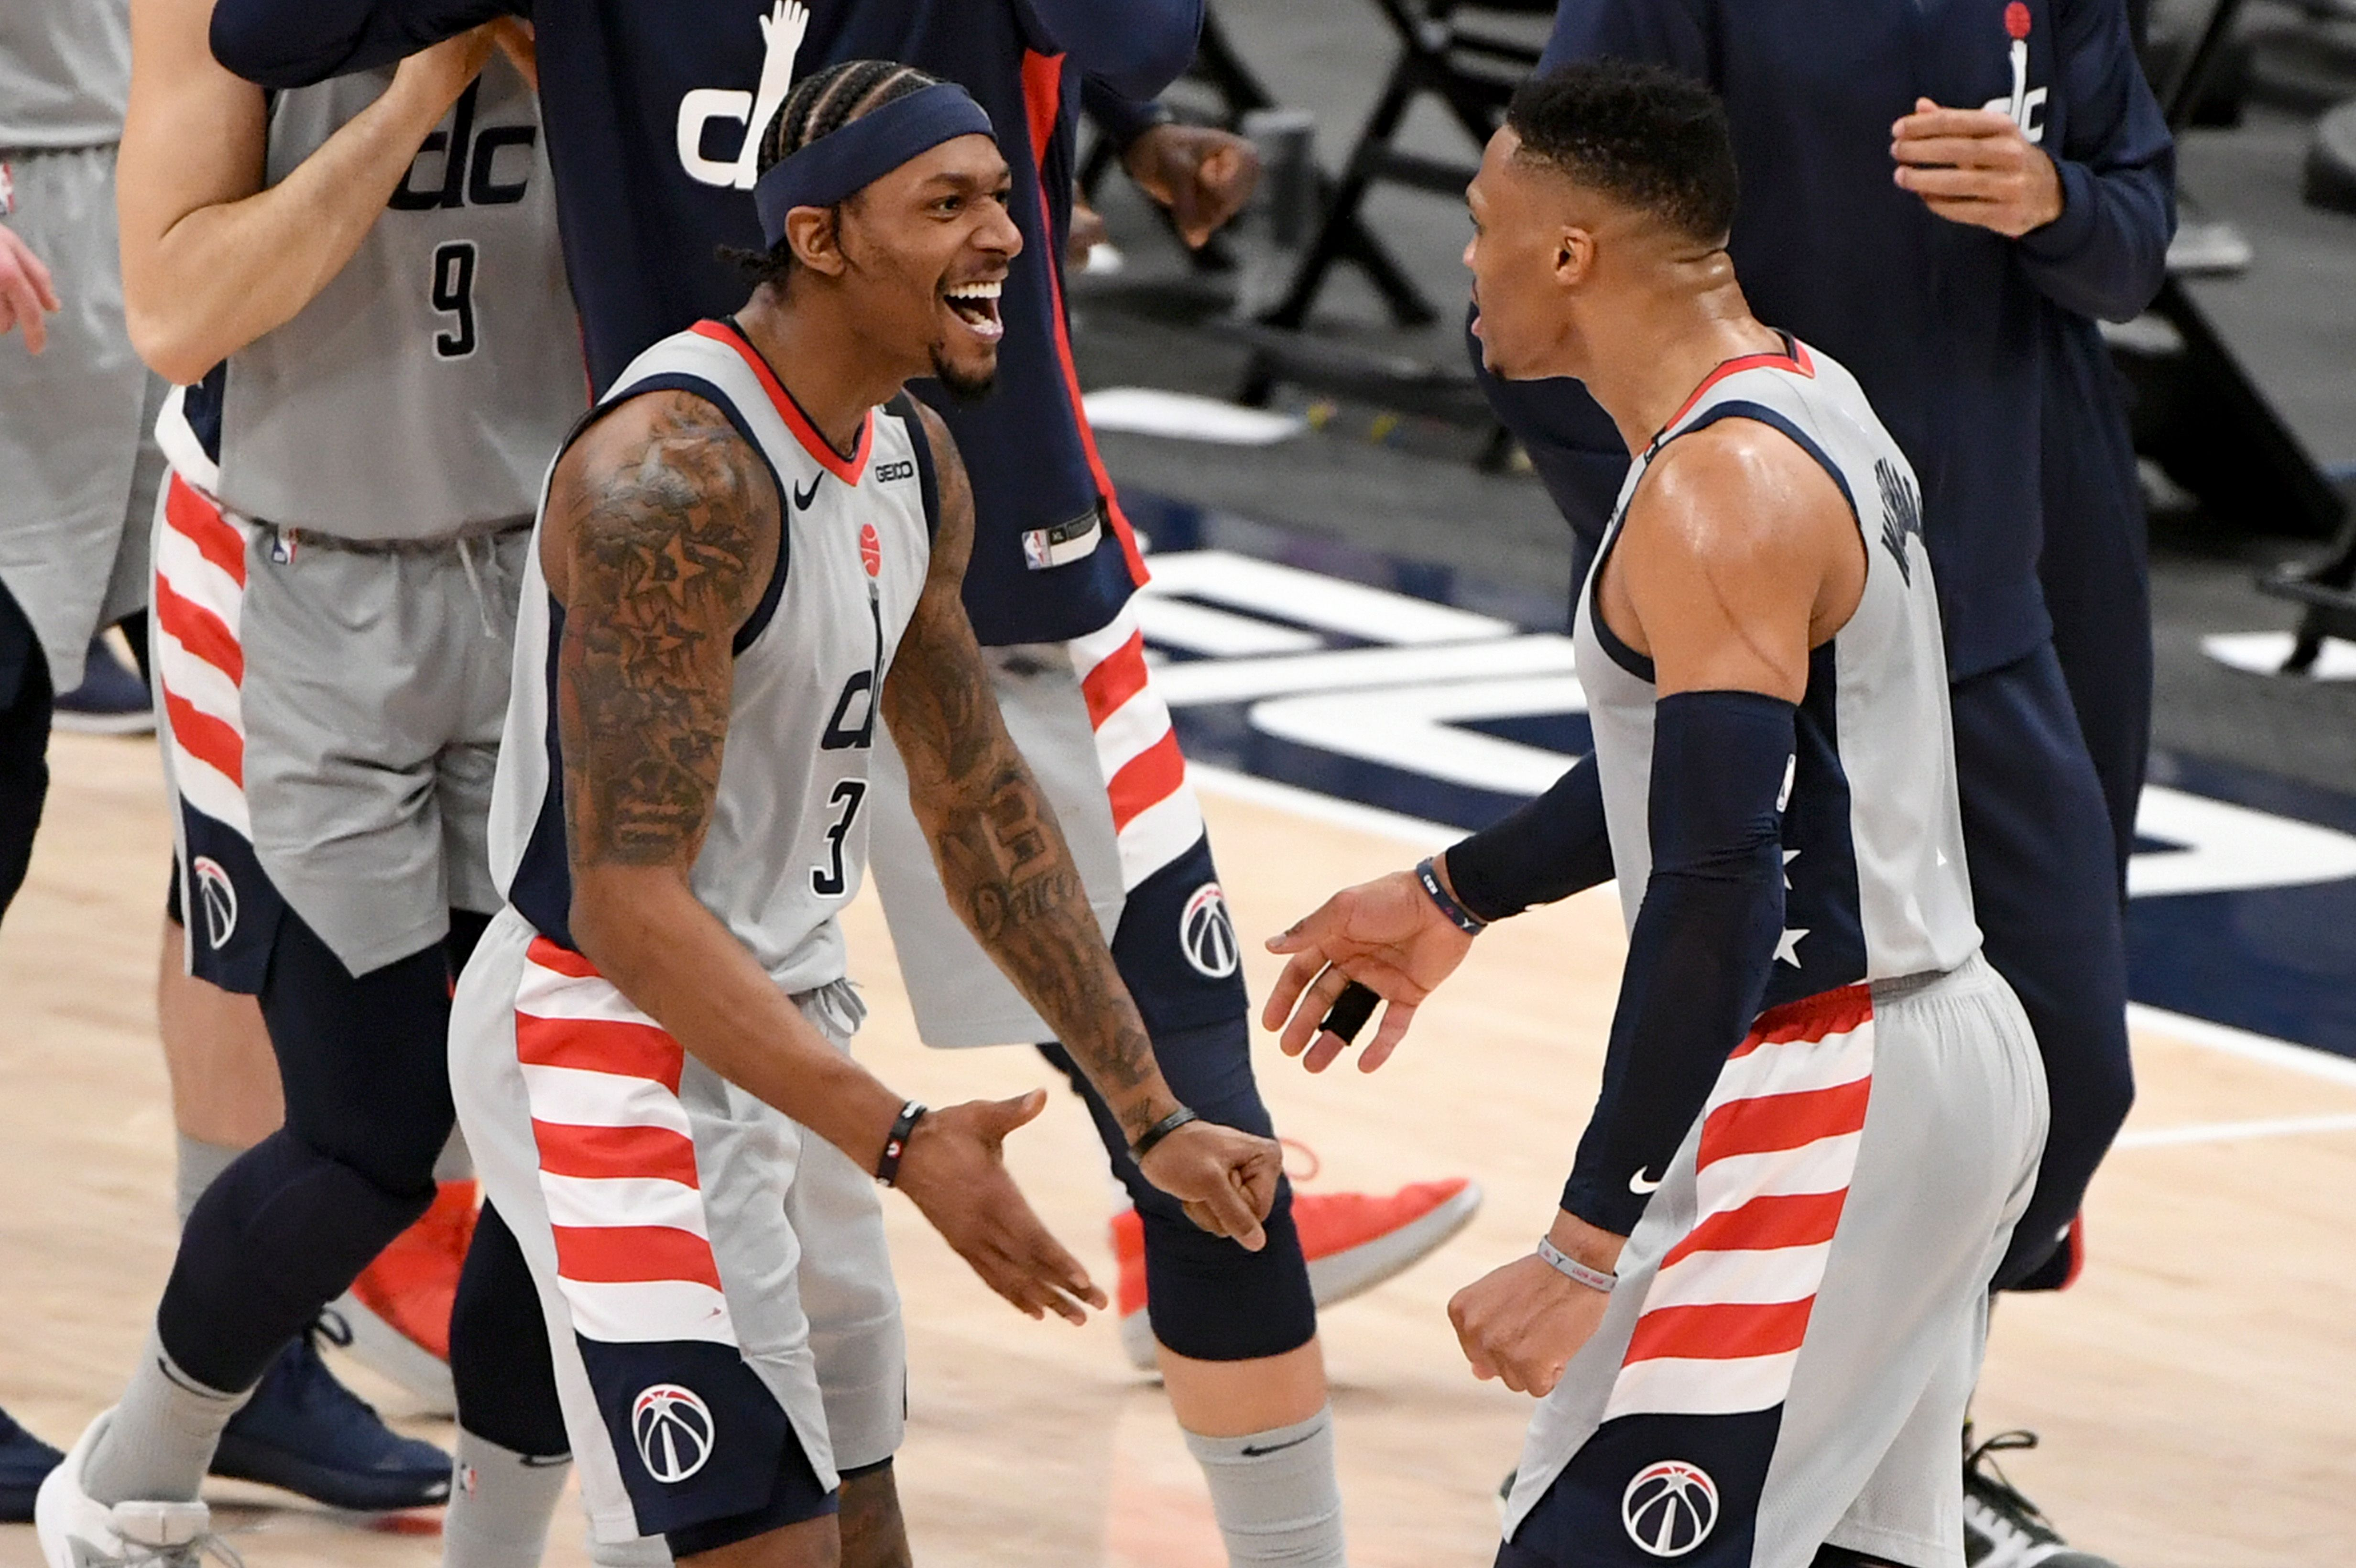 Bradley Beal and Russell Westbrook shake hands after Wizards win the game